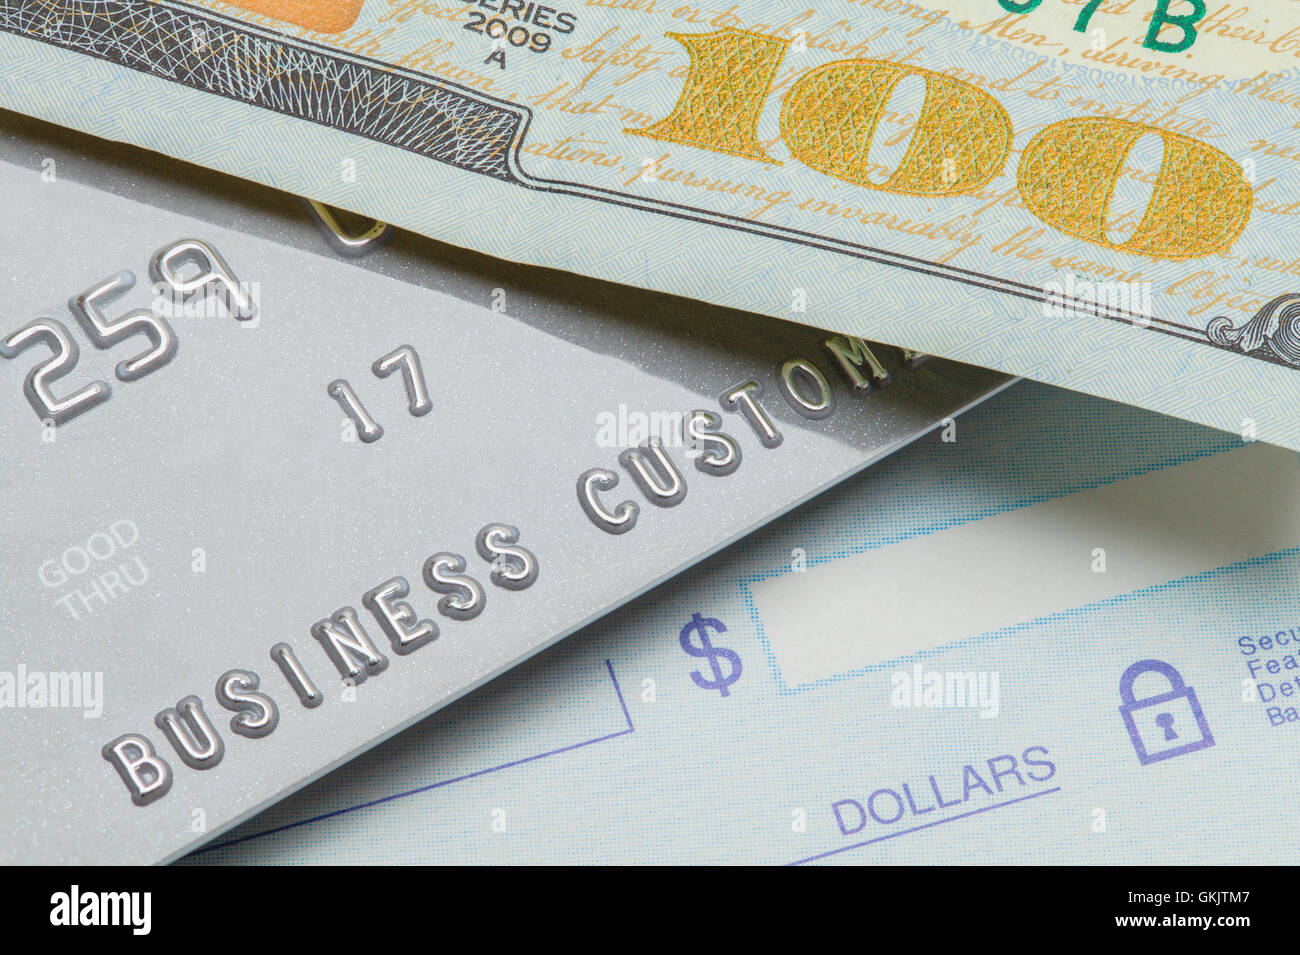 One Hundred Dollar Bill with Credit Card and Bank Check. - Stock Image